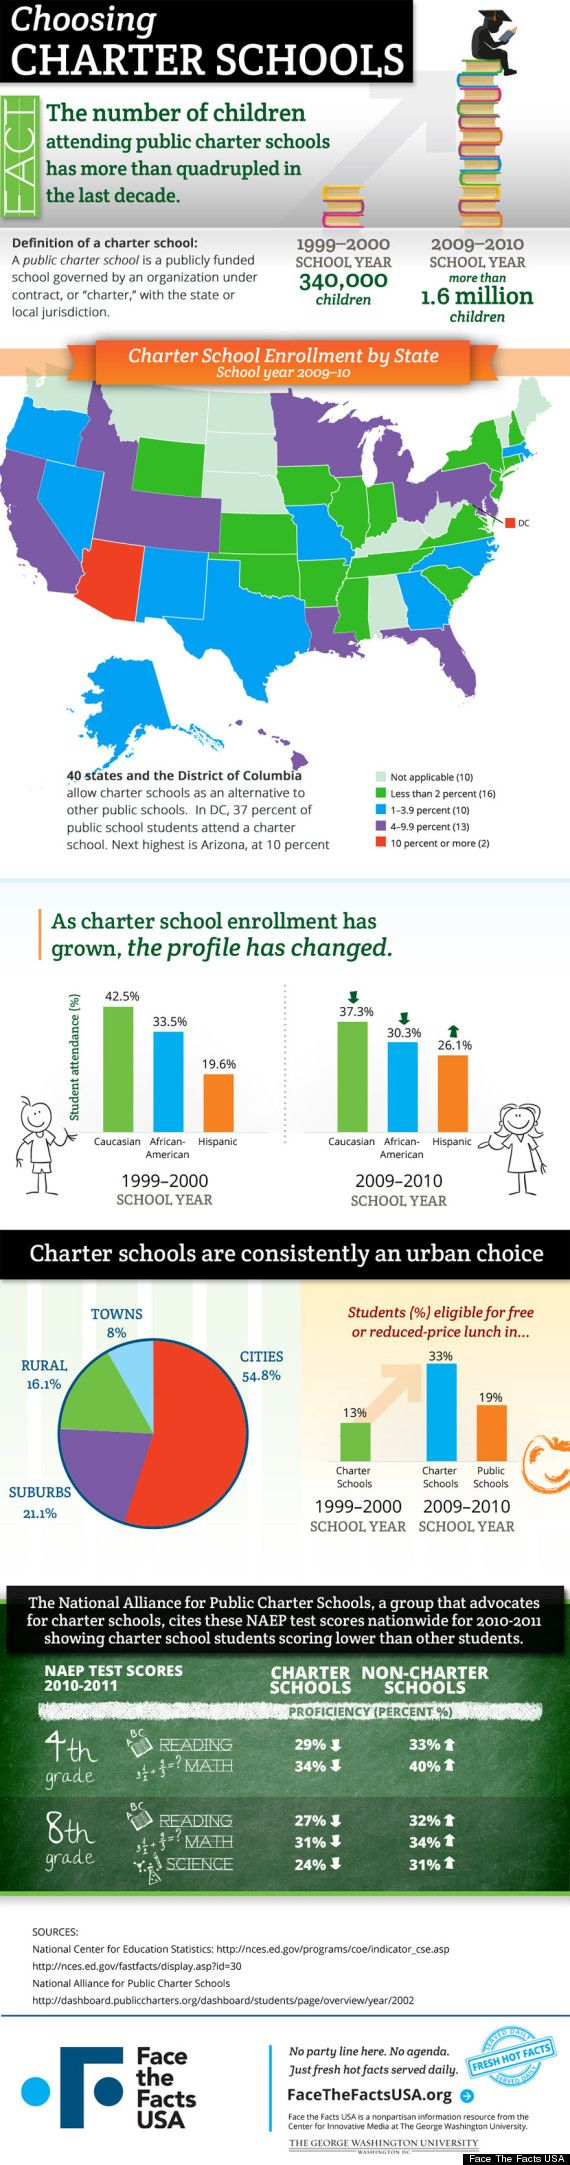 US children attending charter schools – publicly funded alternative schools run under contract – have more than quadrupled in 10 years. Their numbers have gone from 340,000 in 1999-2000 to more than 1.6 million in 2009-2010. Check out the test scores...